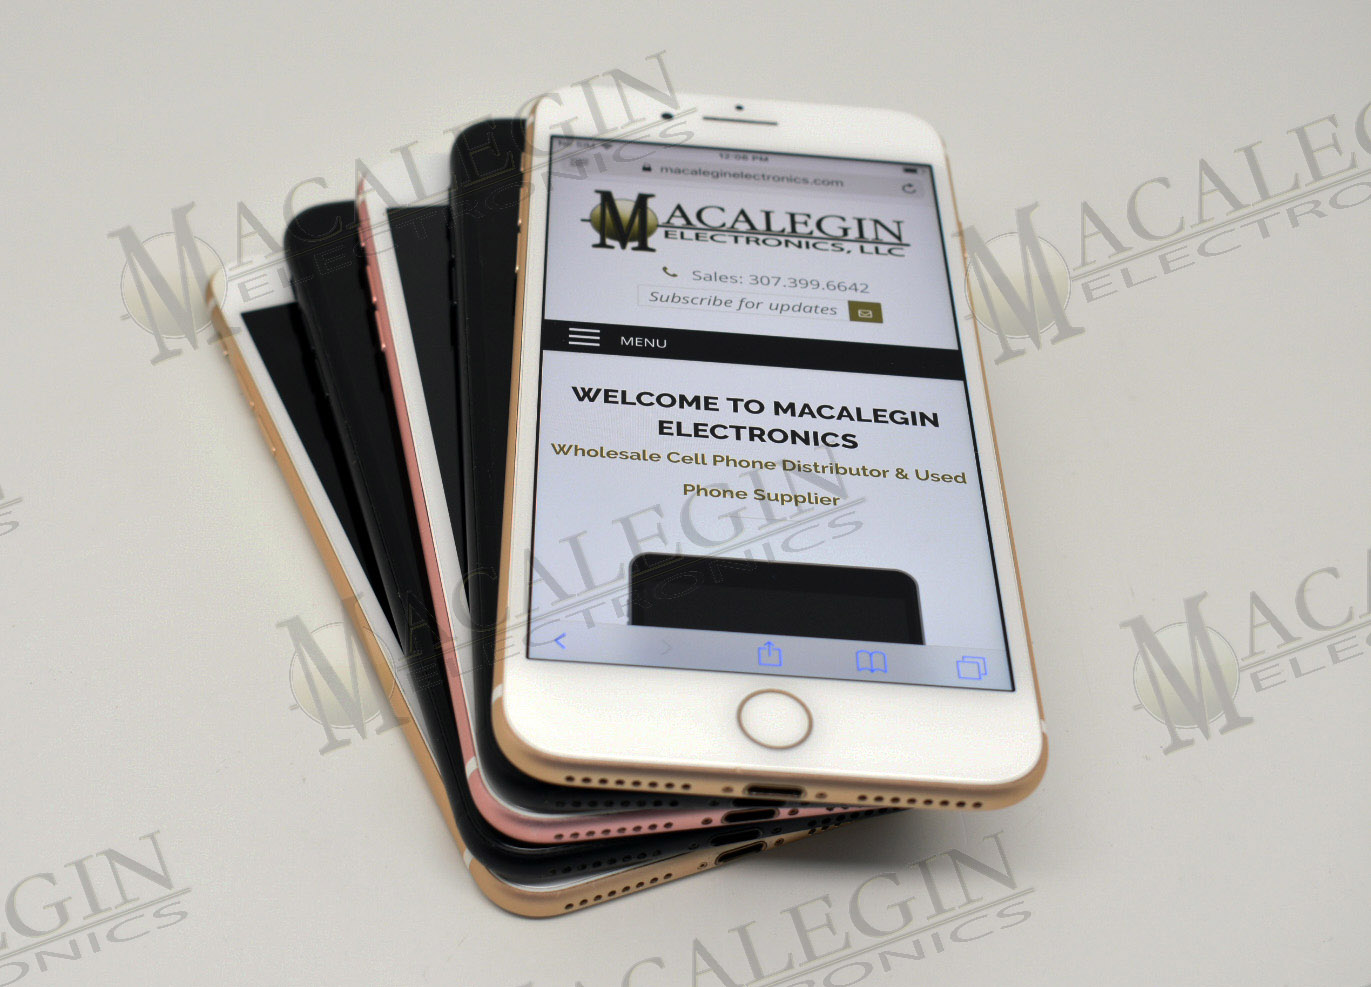 Used APPLE A1784 IPHONE 7 PLUS 32GB UNLOCKED in PGL condition for sale from Macalegin Electronics at $285 a piece.